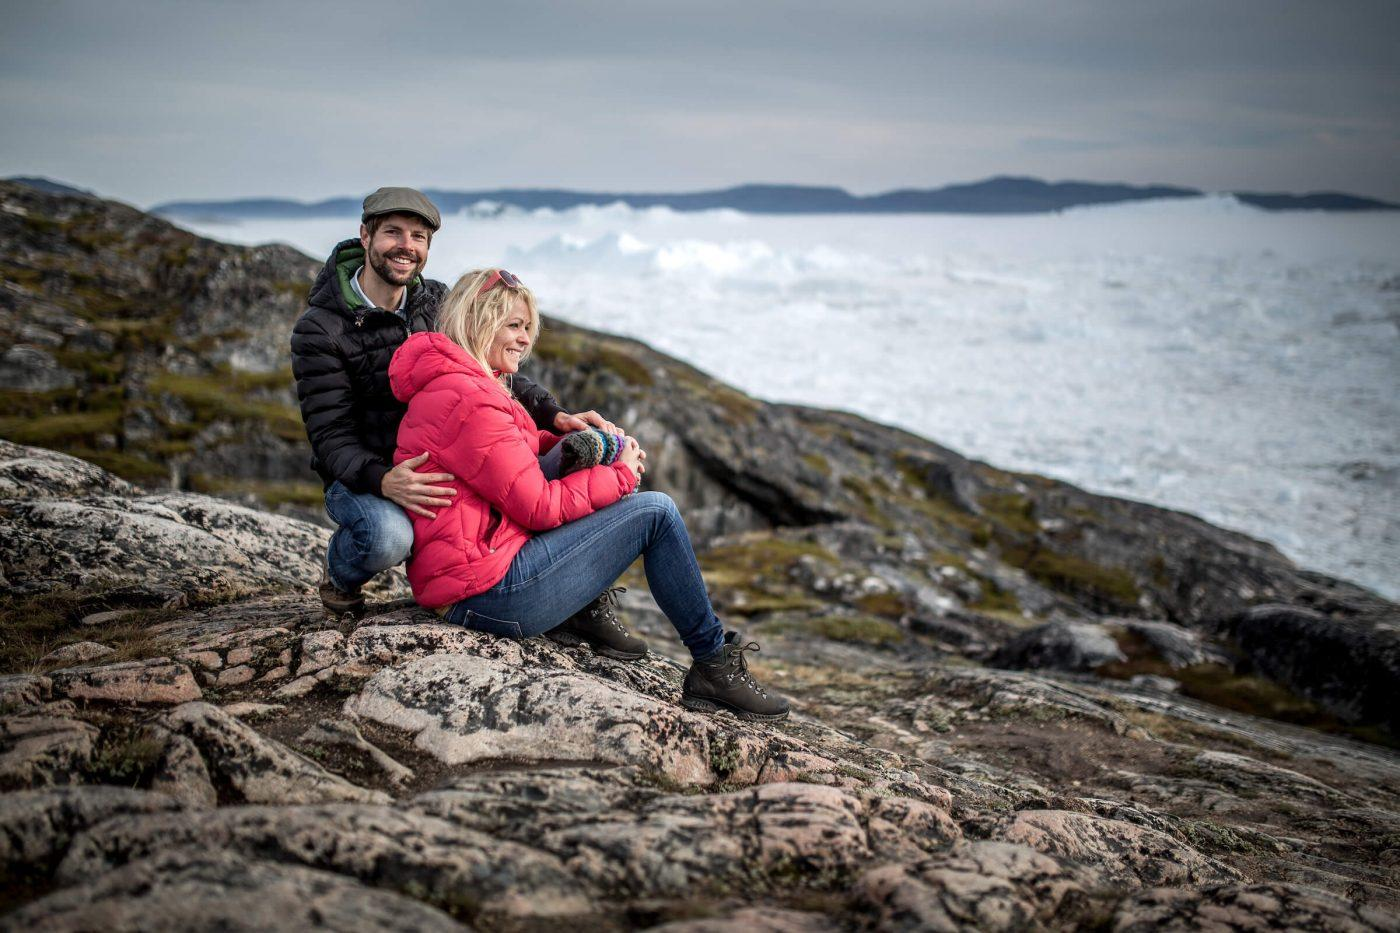 A couple overlooking the Ilulissat ice fjord near Sermermiut in Greenland. By Mads Pihl